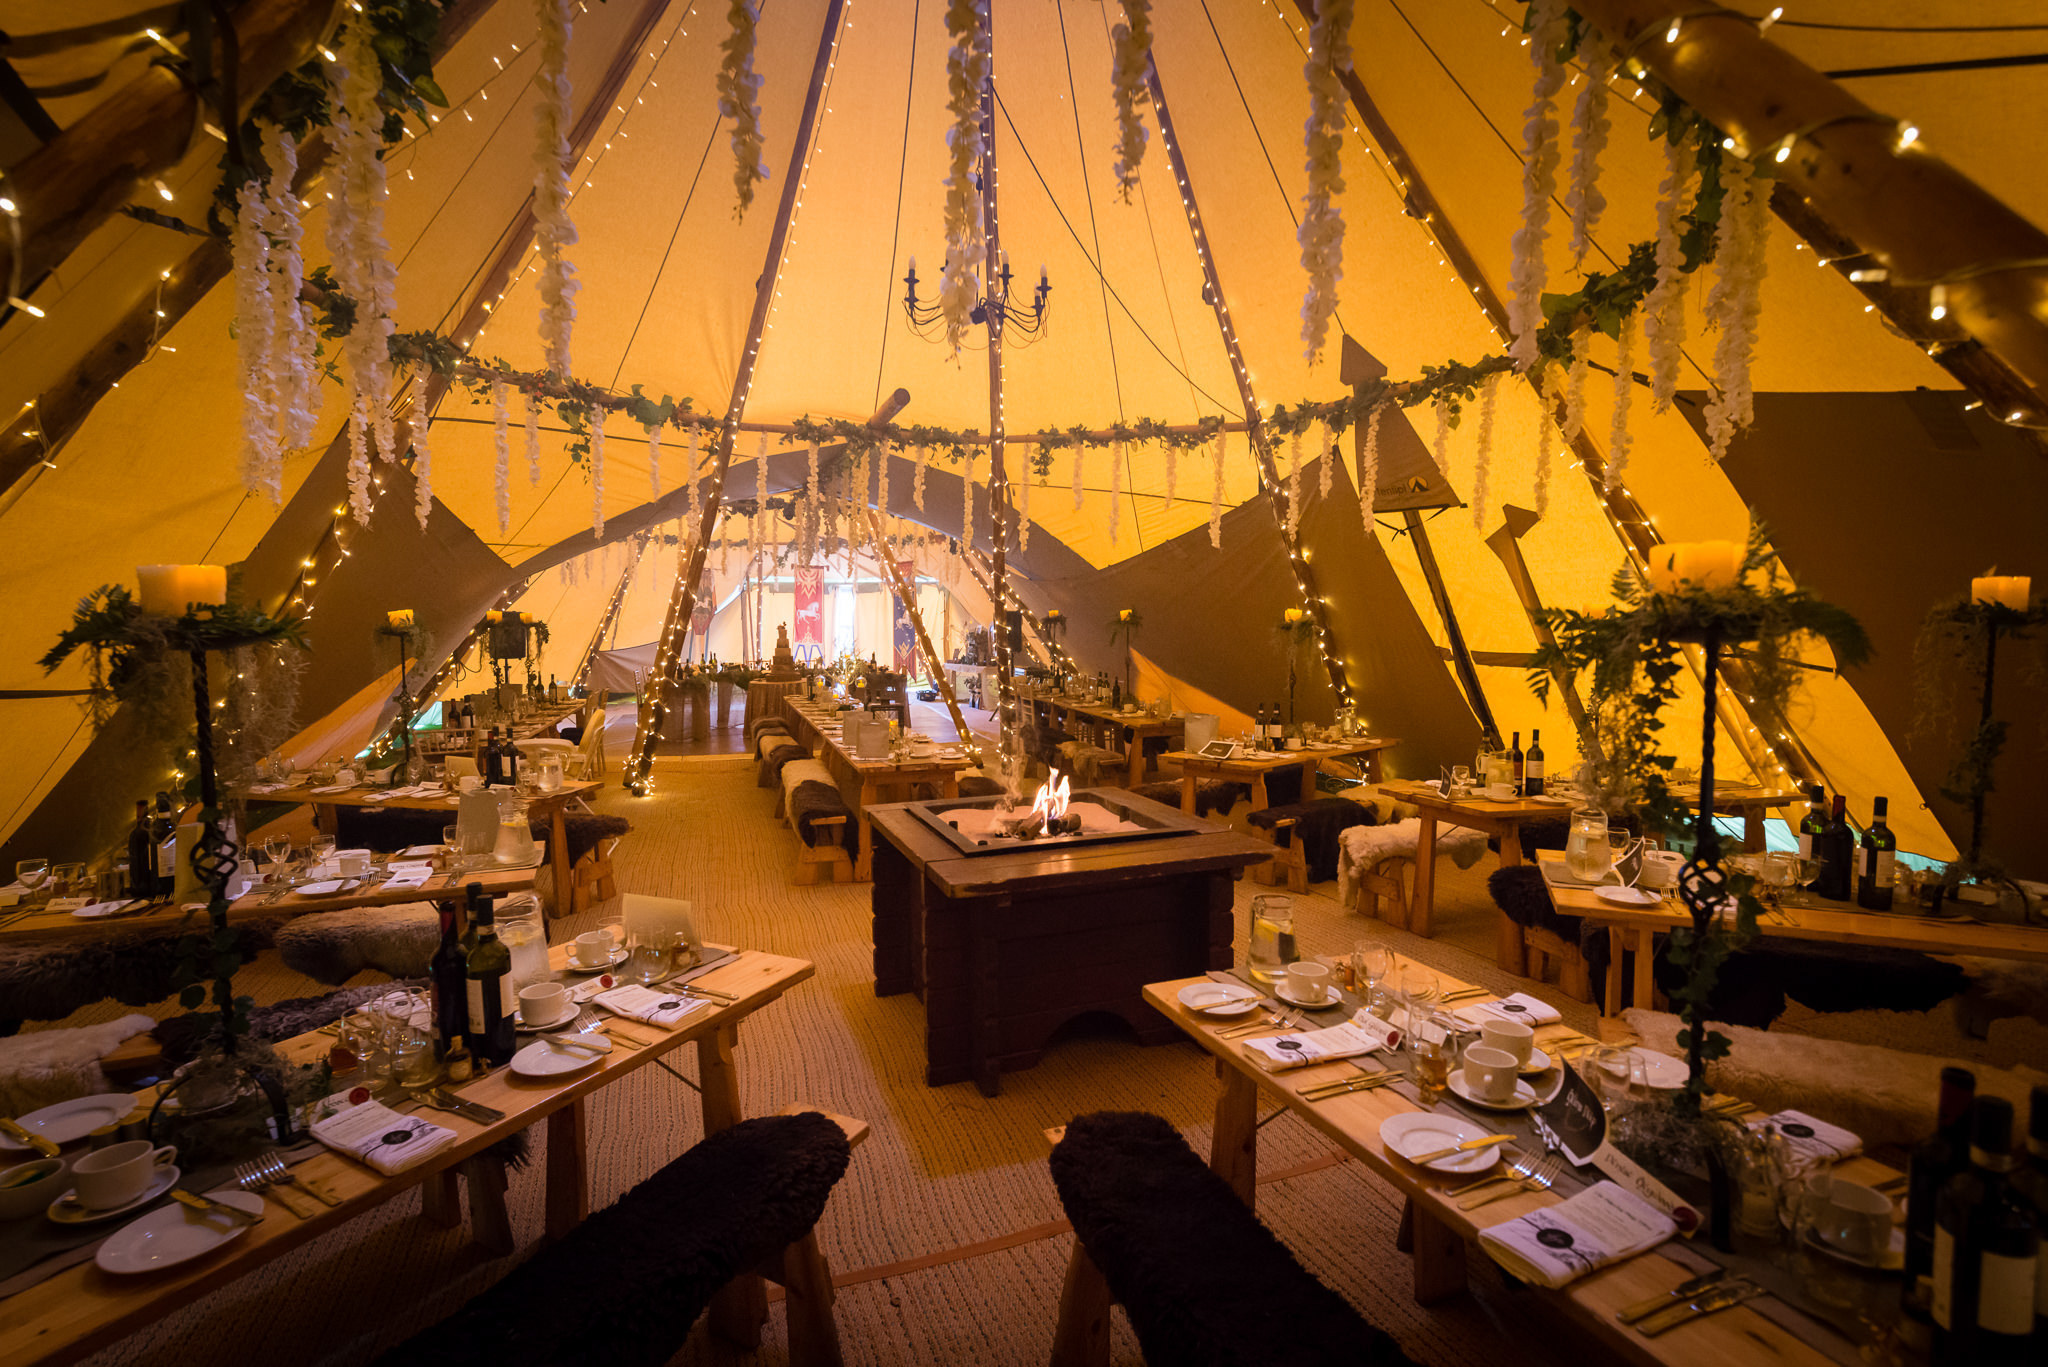 The inside of the tipi